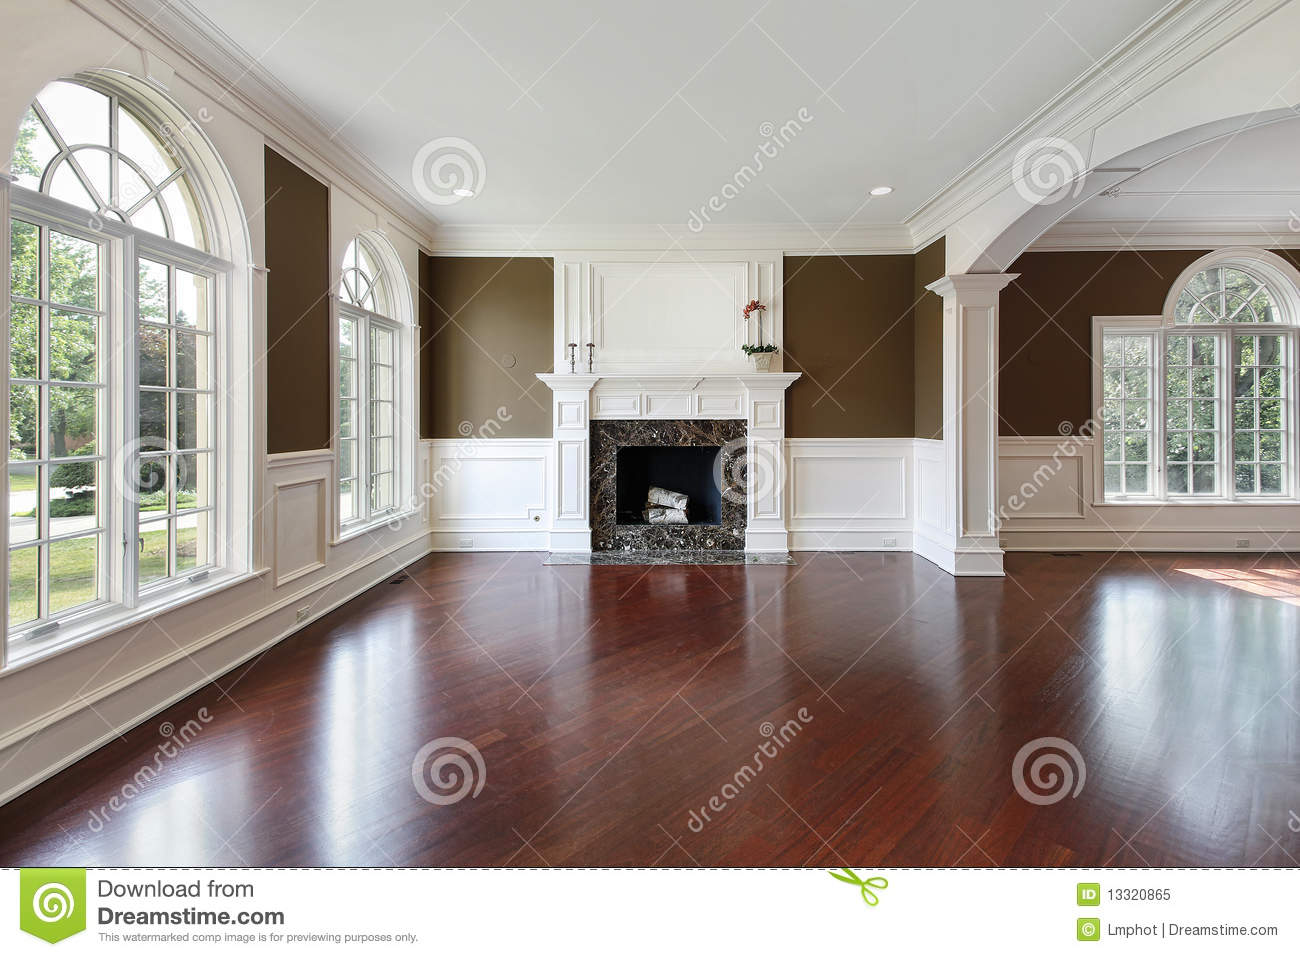 Living room with cherry wood flooring stock image image Carpet or wooden floor in living room